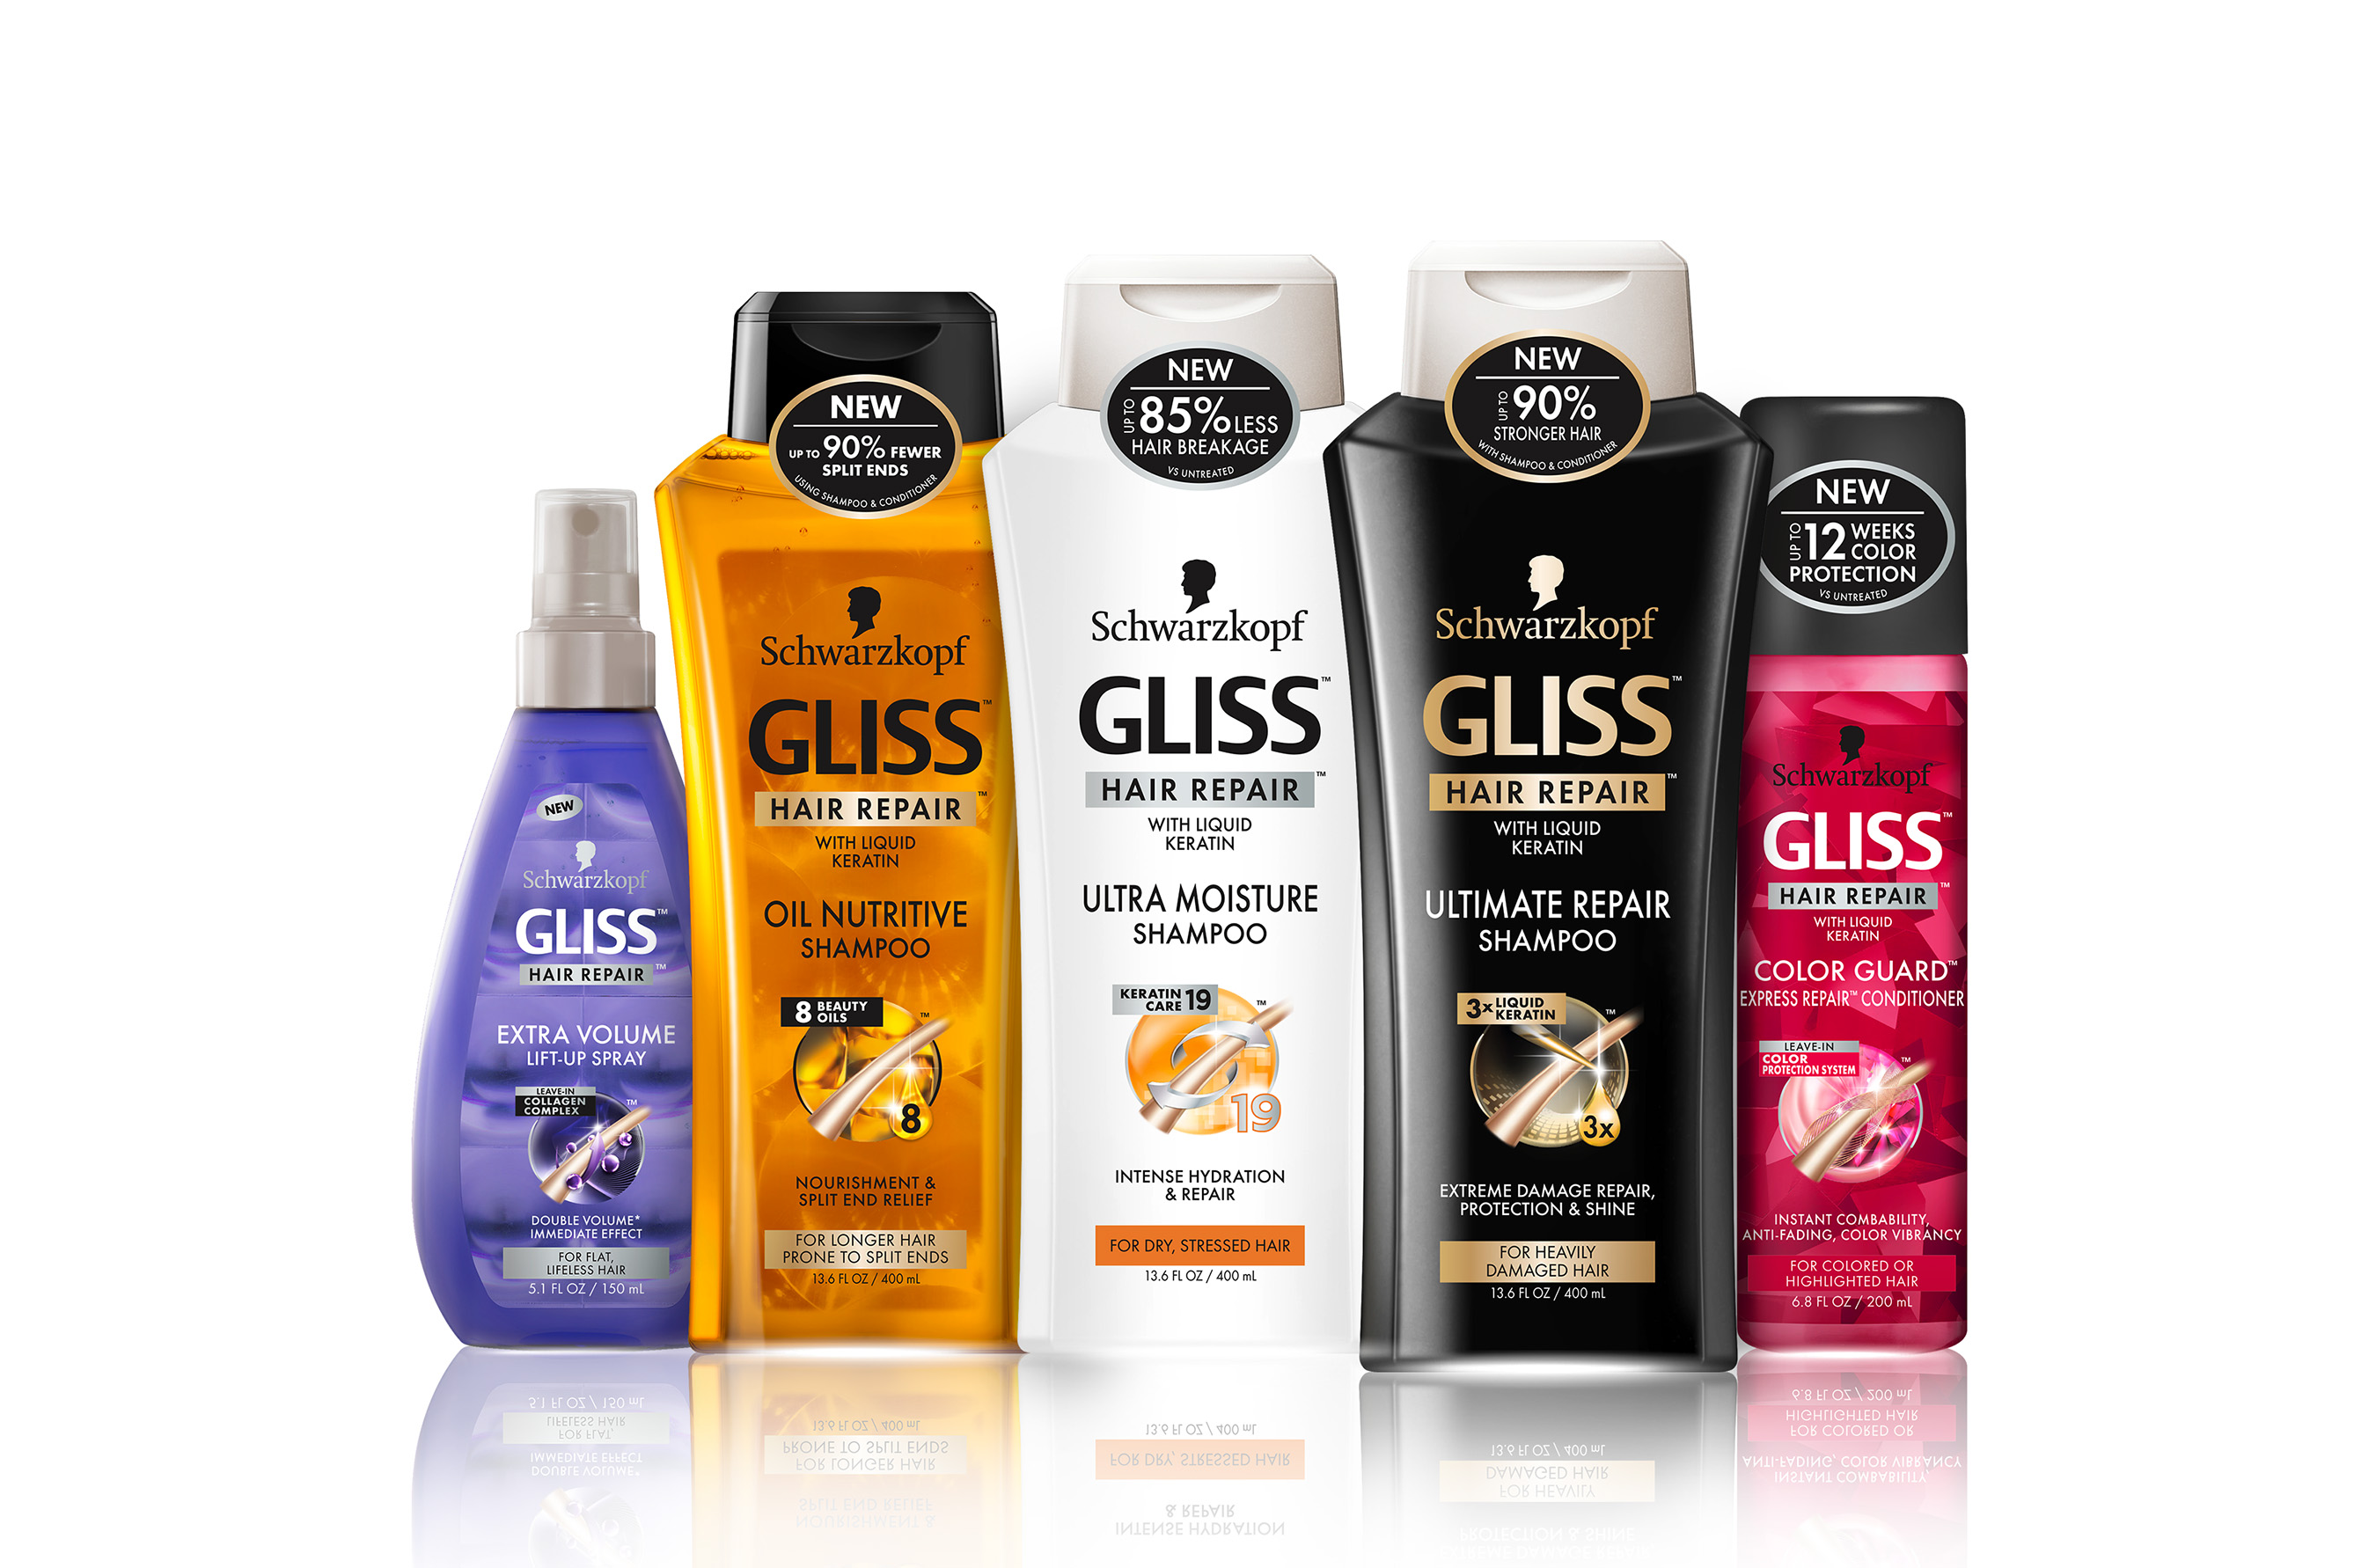 New To Canada Gliss Hair Repair By Schwarzkopf